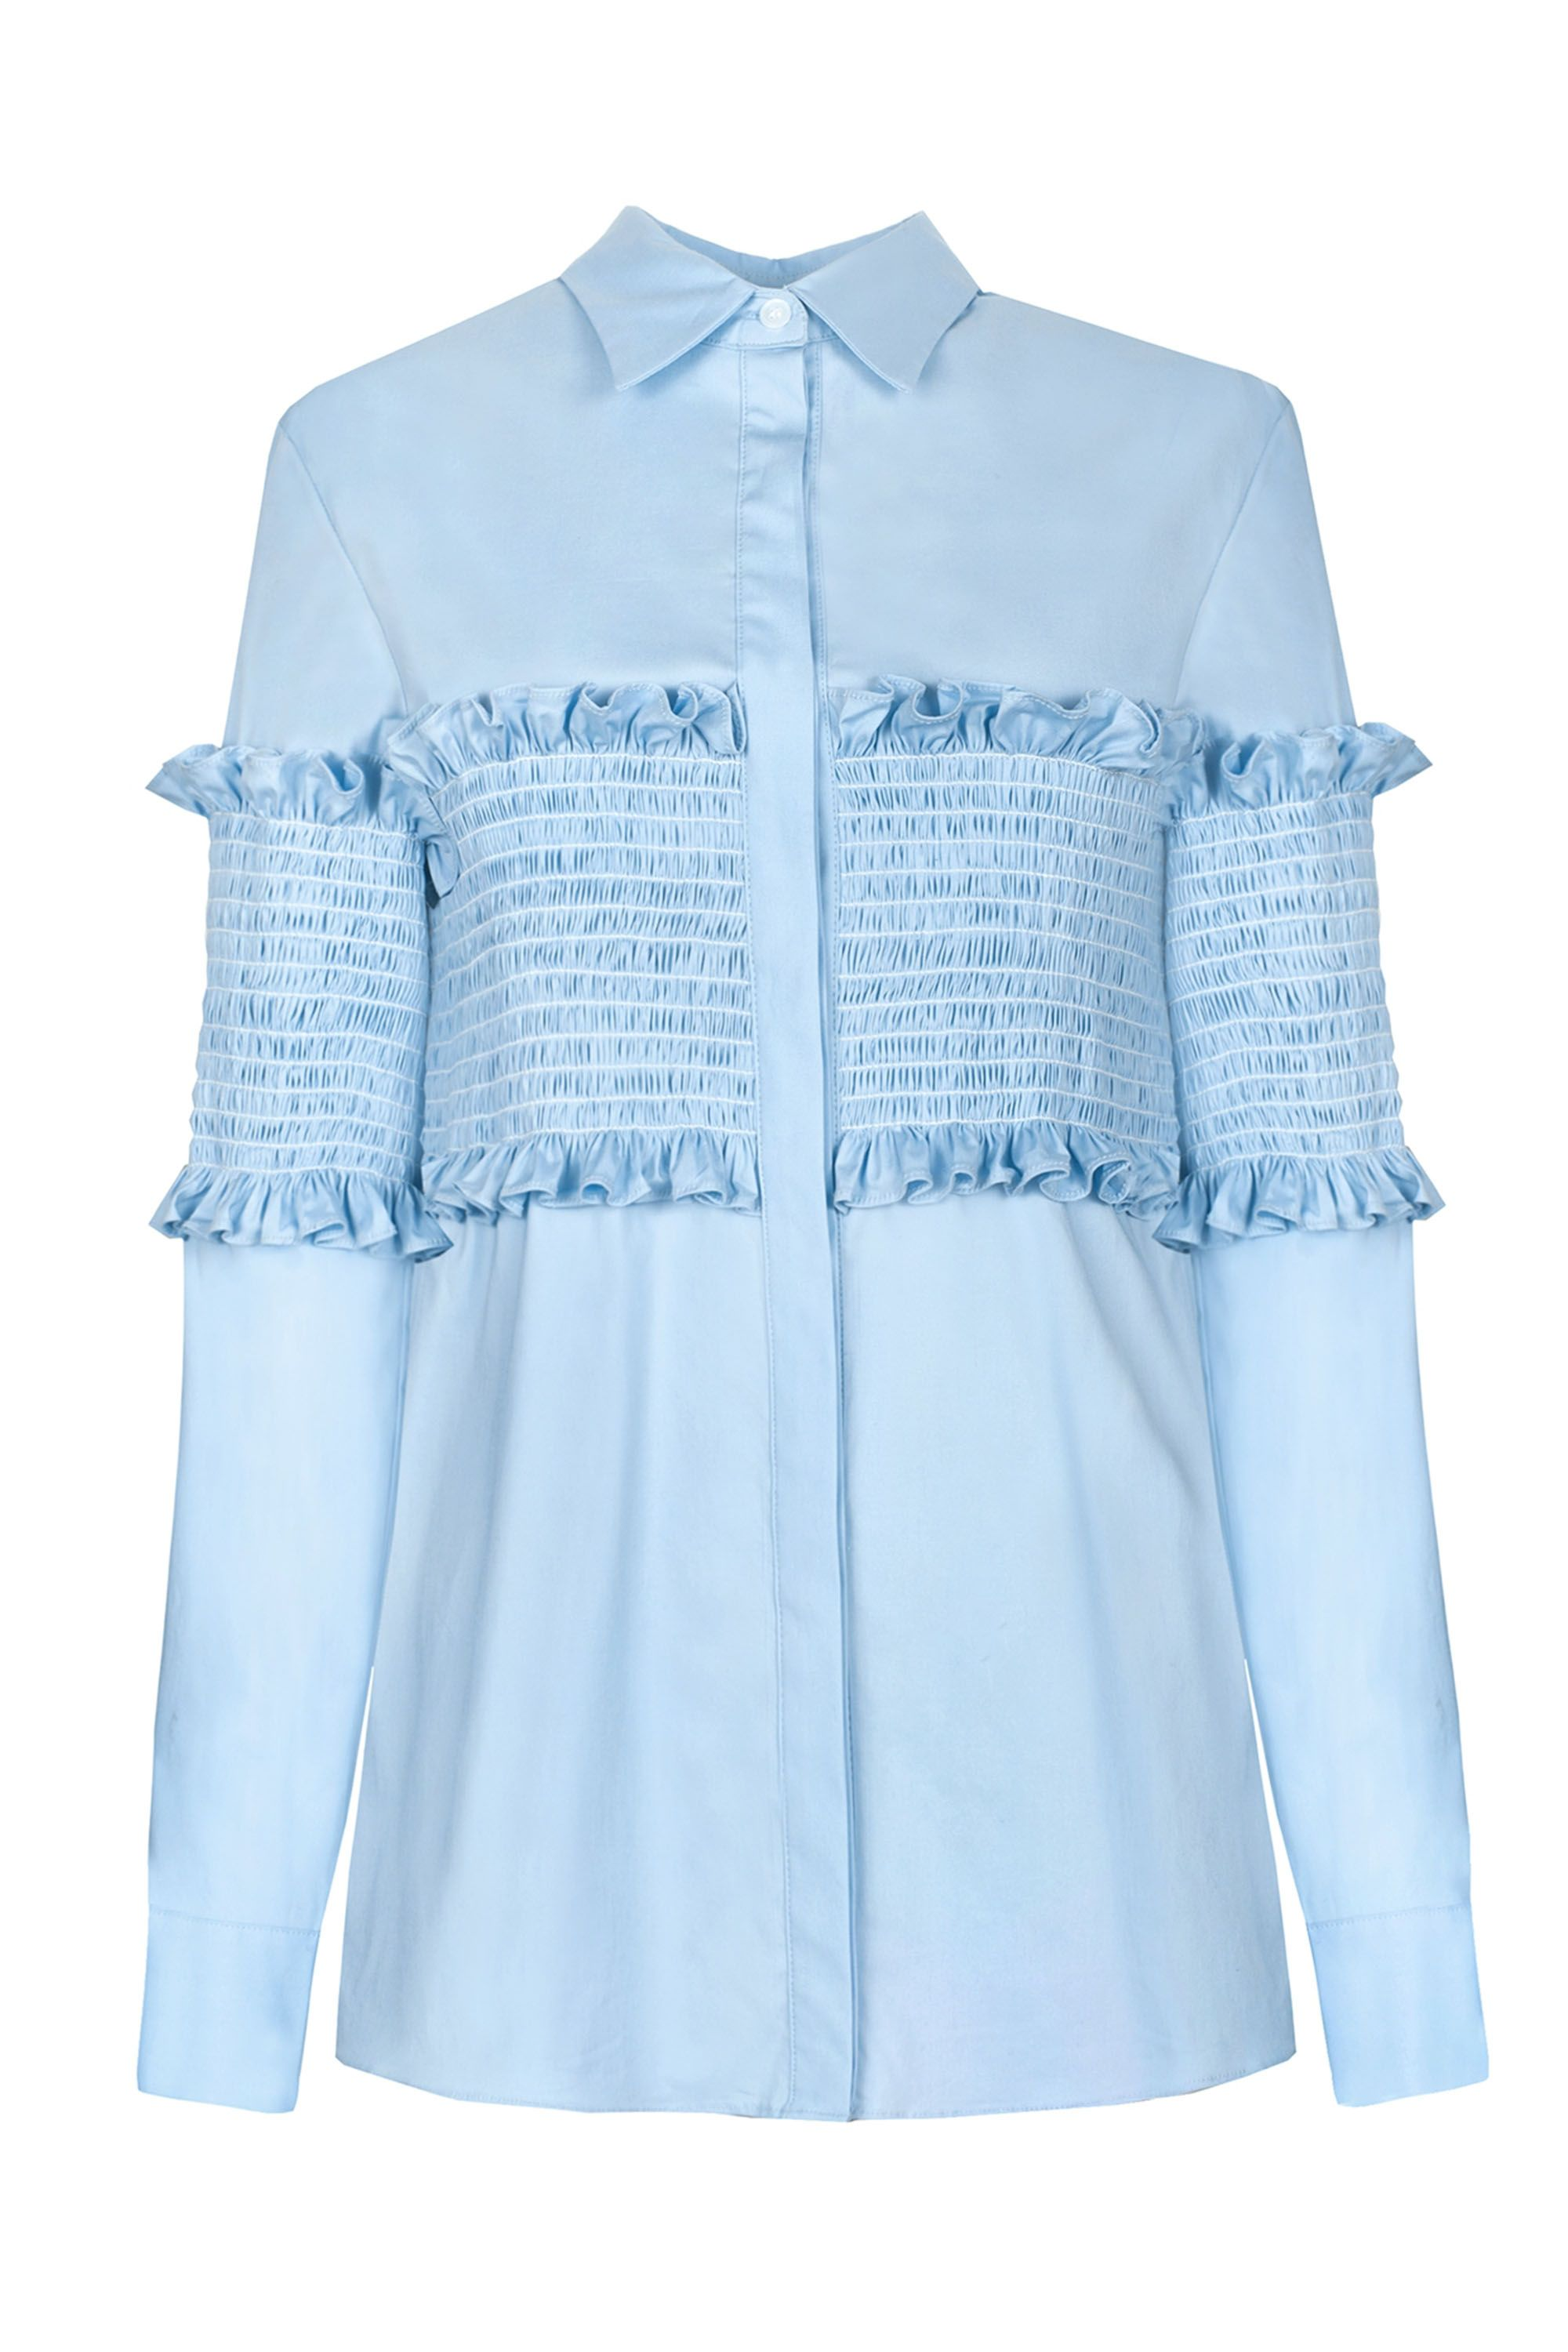 """<p>Pixie Market Smocked Shirt, $128;<a href=""""http://www.pixiemarket.com/light-blue-smocked-shirt.html"""" target=""""_blank"""" data-tracking-id=""""recirc-text-link"""">pixiemarket.com</a></p>"""